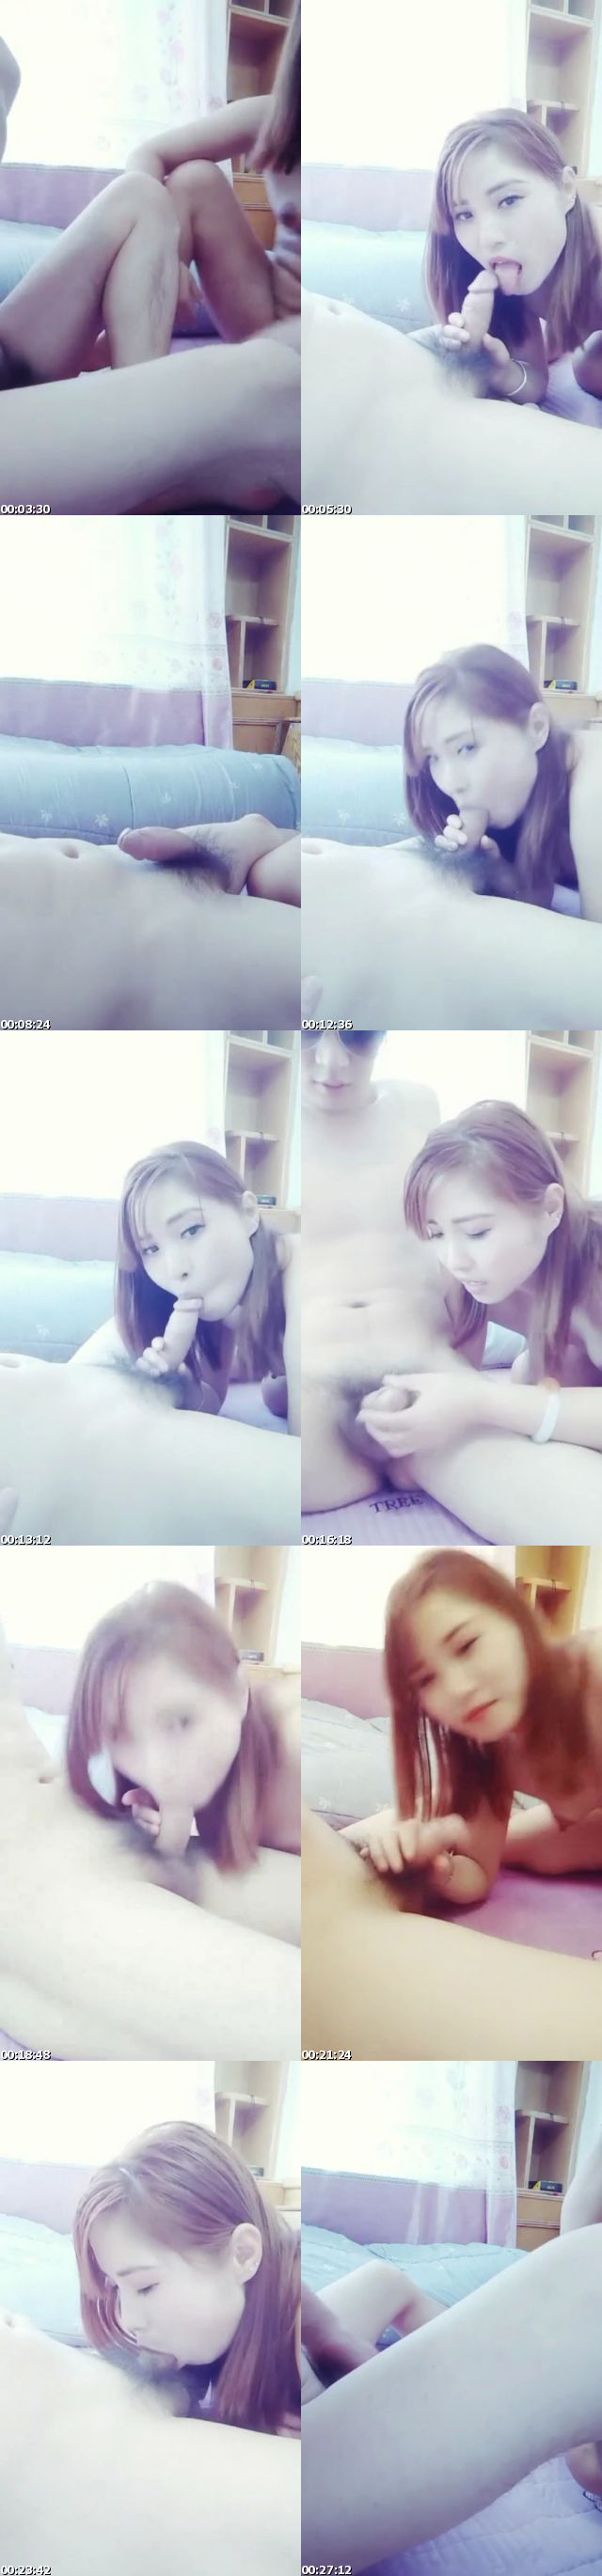 Zhuhai_Sexy_Girl_Show_off_the_Body_and_Sex_in_Webcam_Video_s.jpg